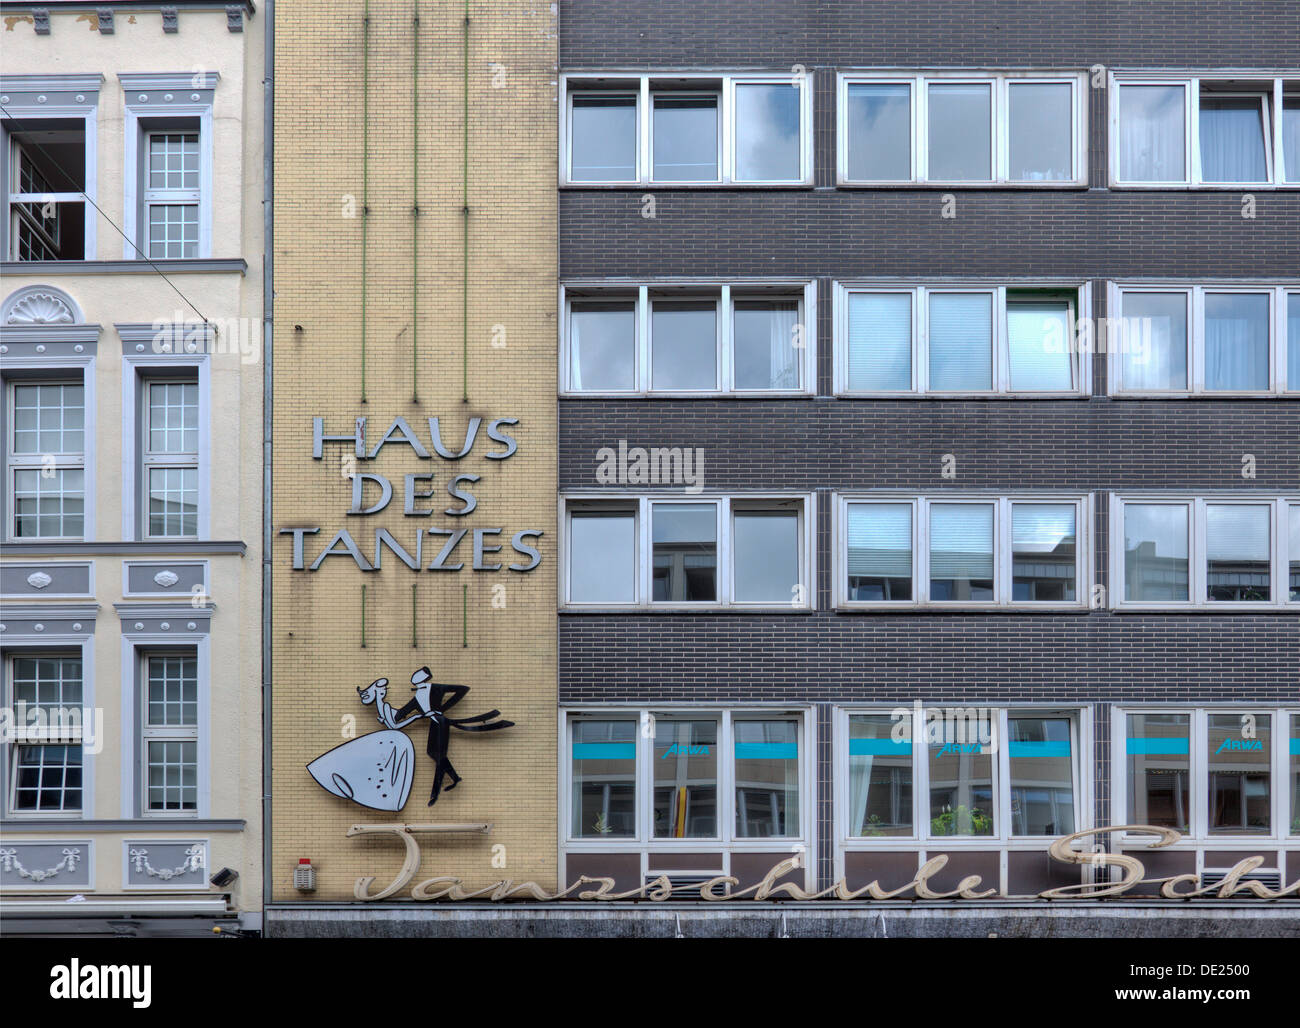 The 'Haus Des Tanzes' in Köln, Germany - Stock Image